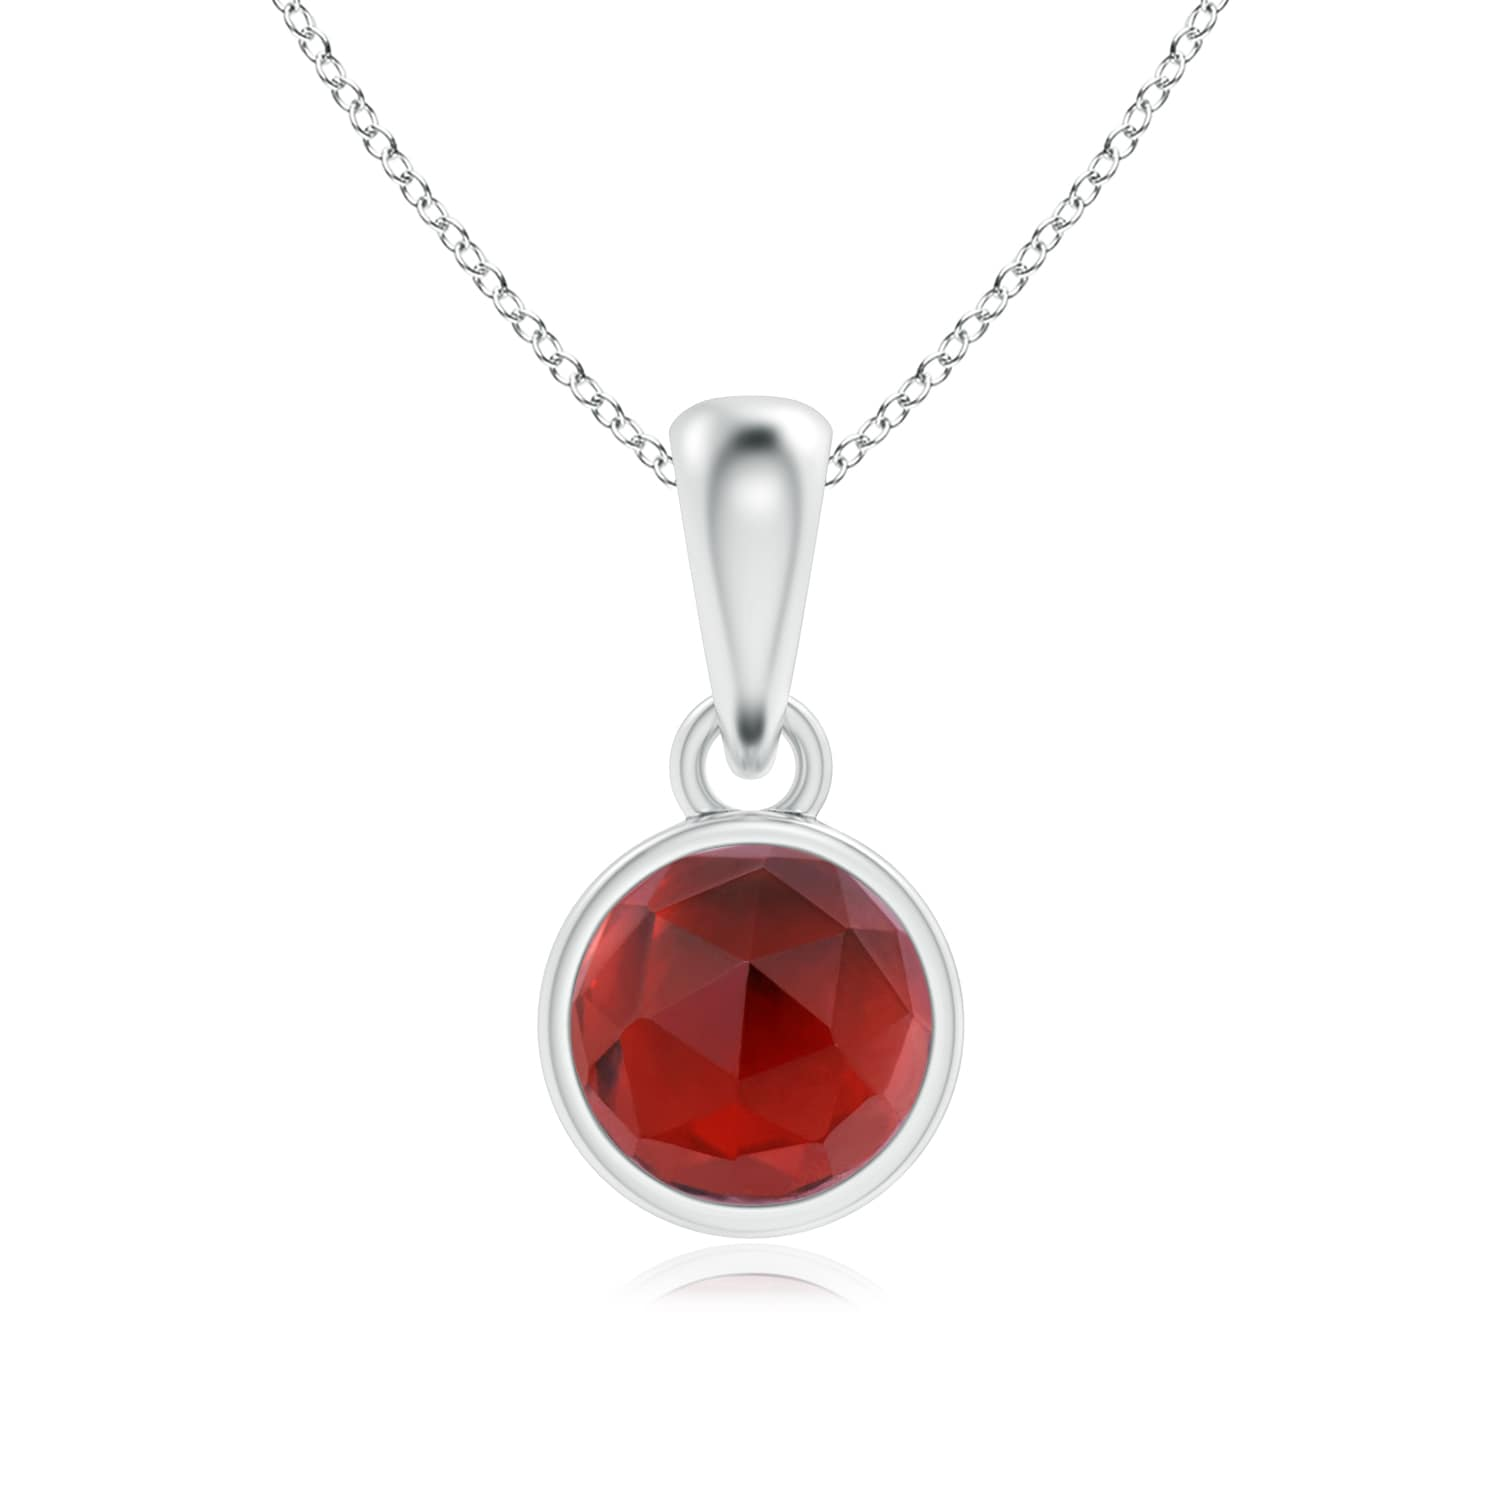 January Birthstone Pendant Necklaces Bezel Set Garnet Solitaire Dangle Pendant in 14K Rose Gold (5mm Garnet)... by Angara.com